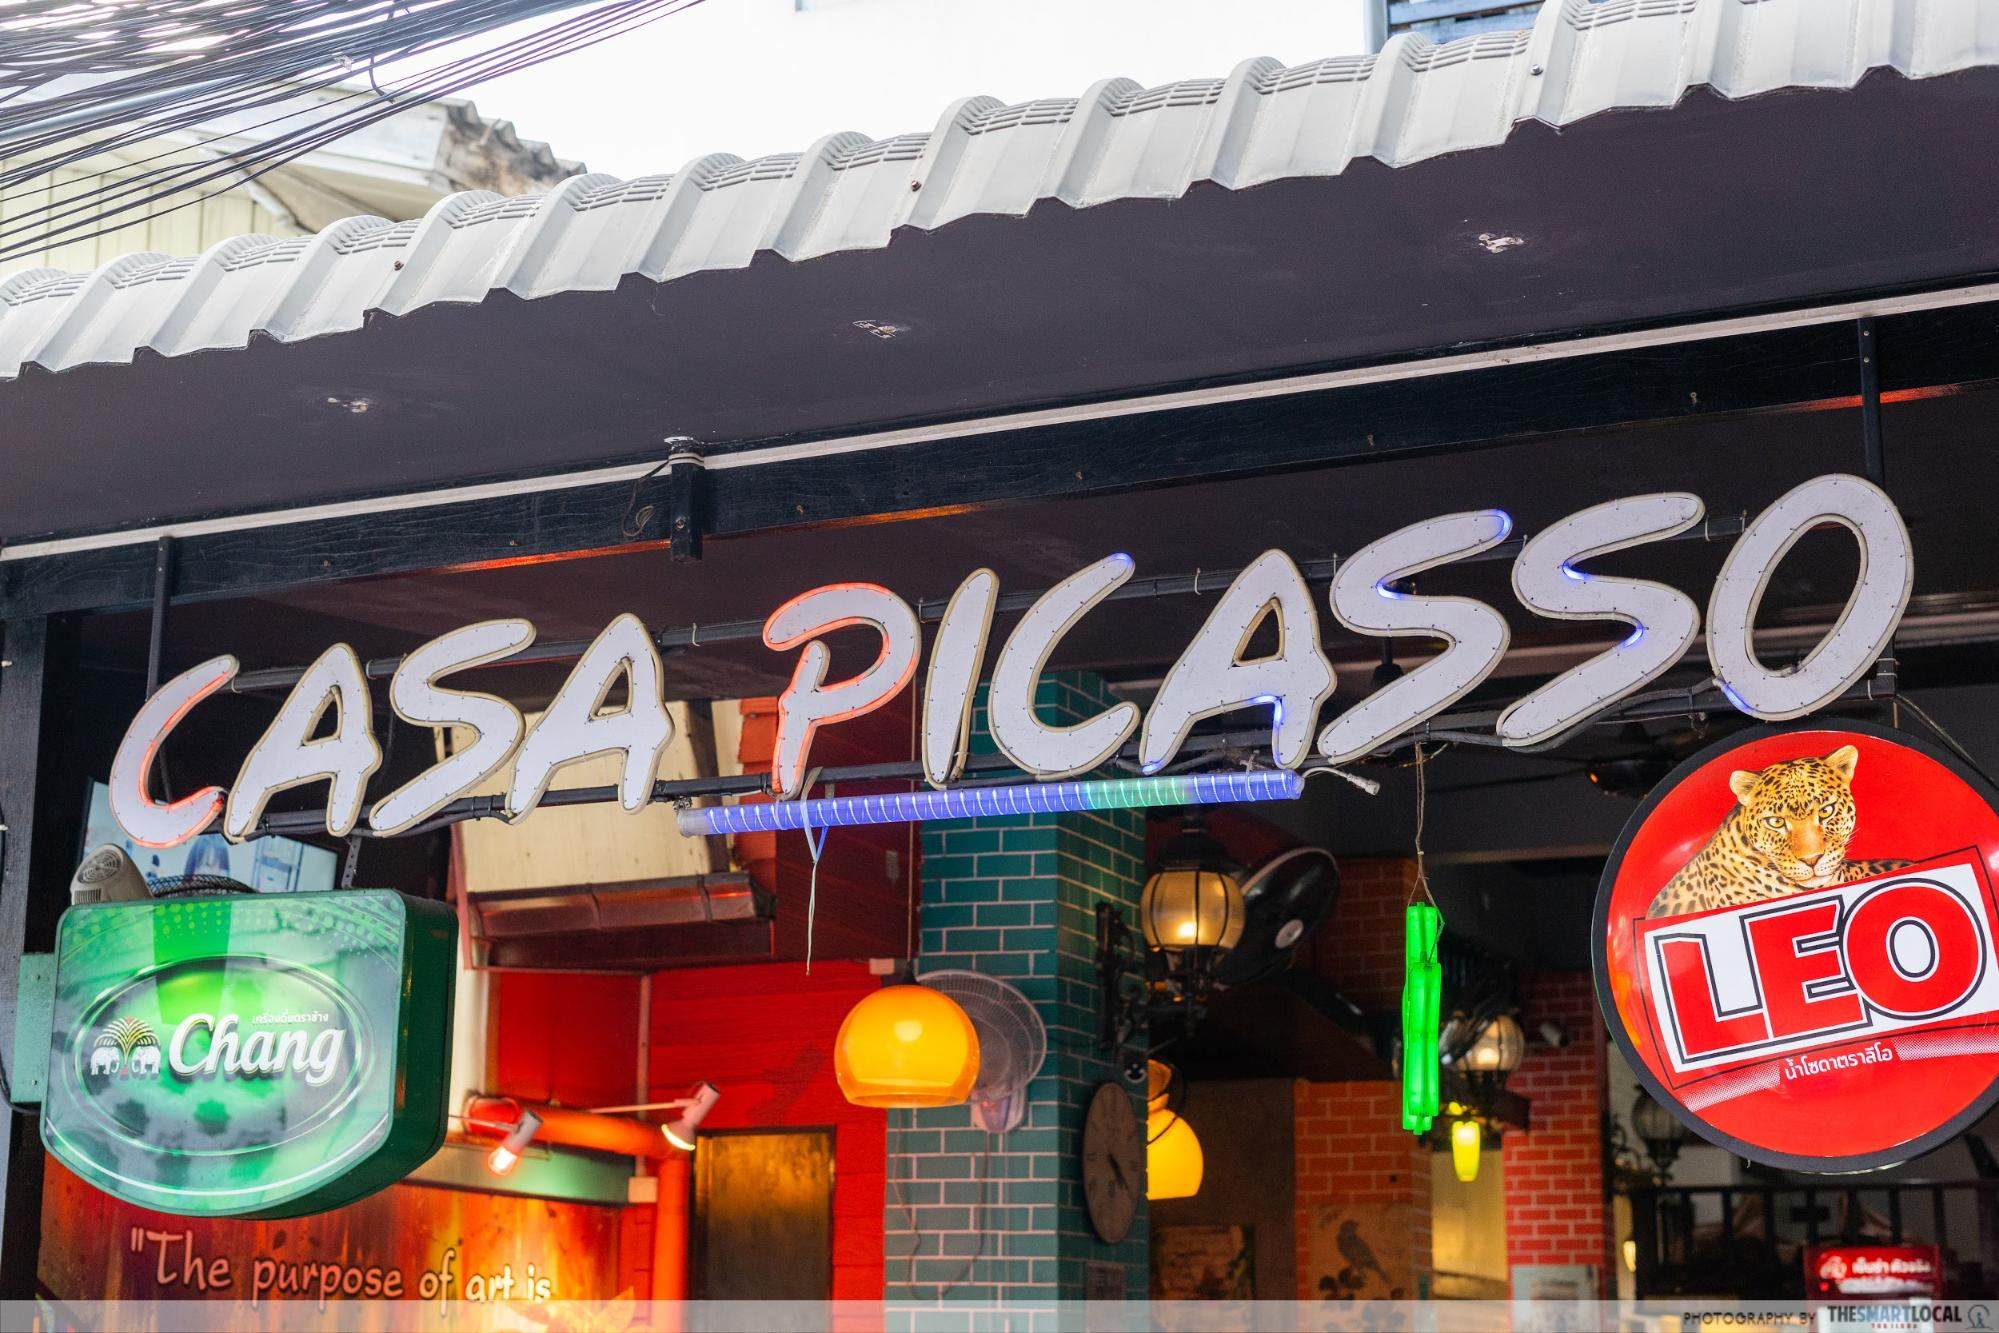 Giant pizzas at Casa Picasso